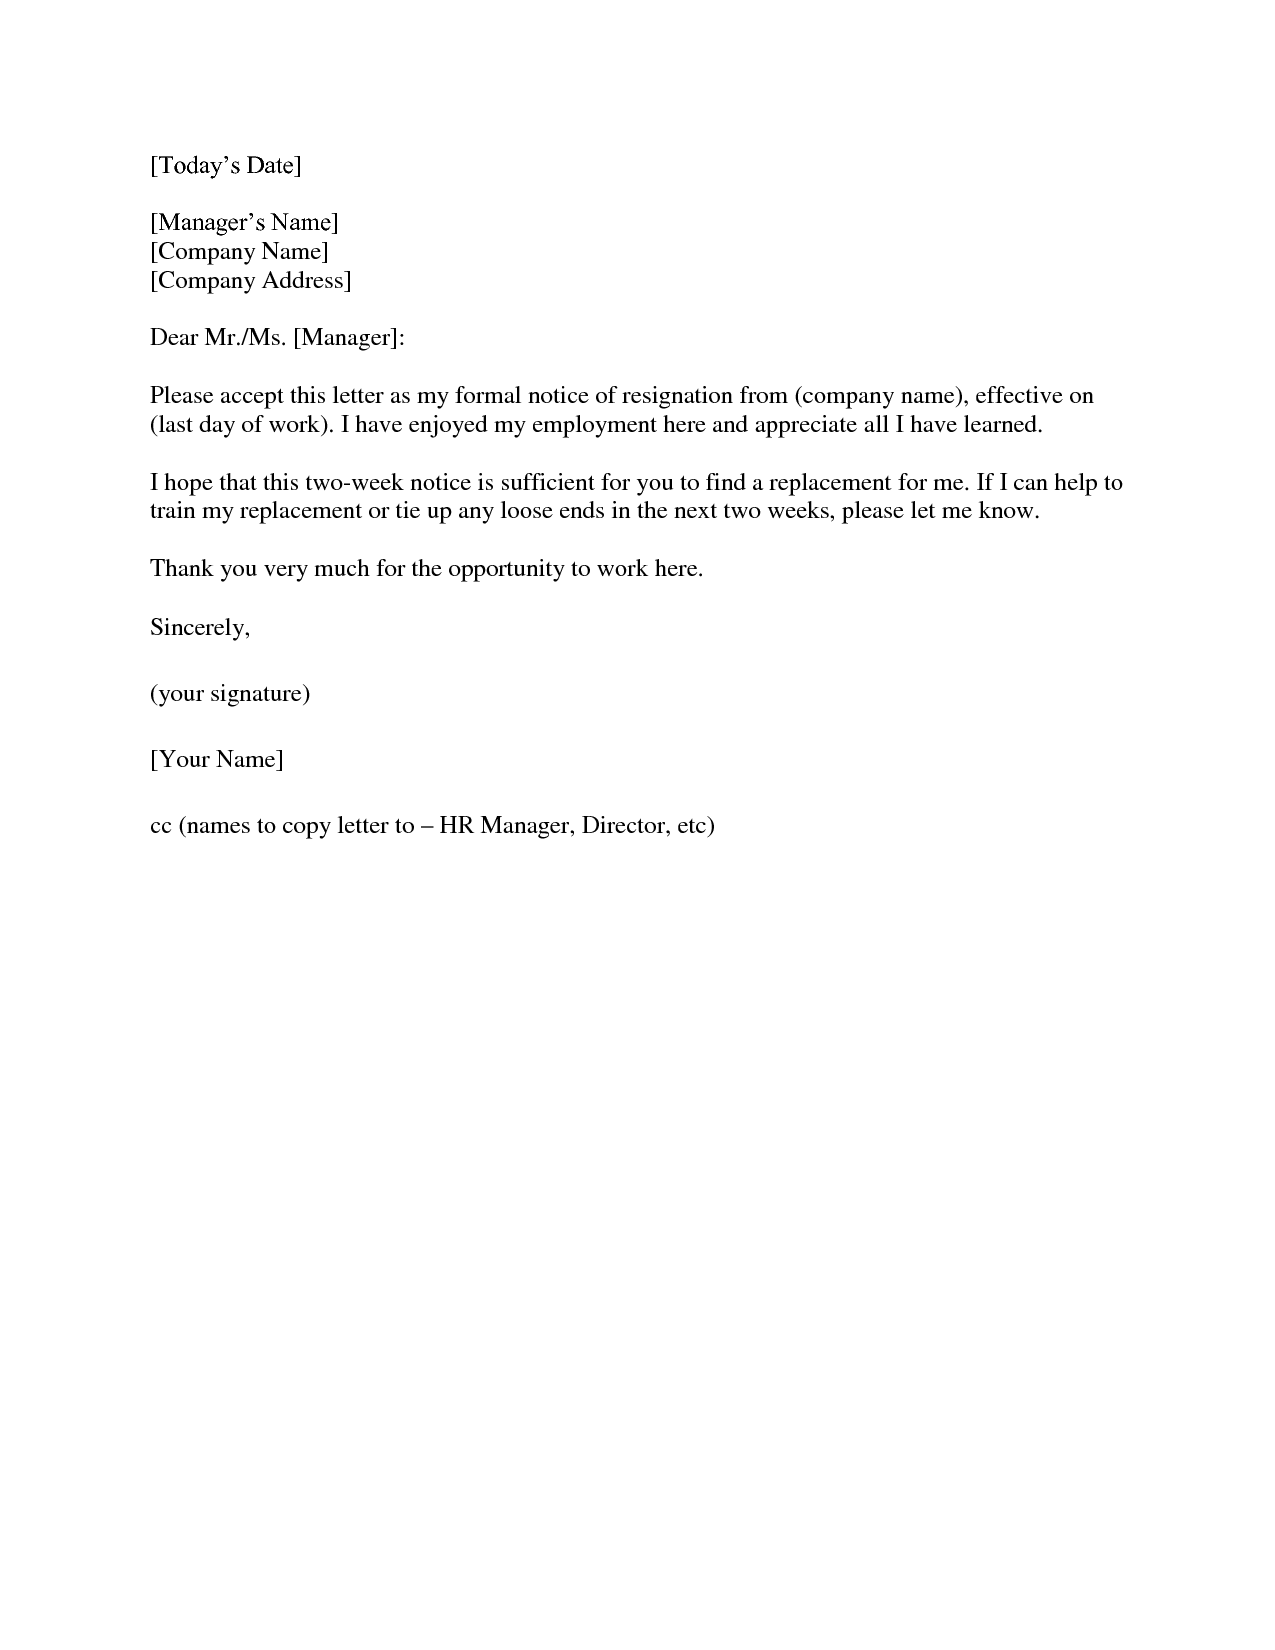 Resignation Letter 2 Week Notice Wow Com Image Results Career